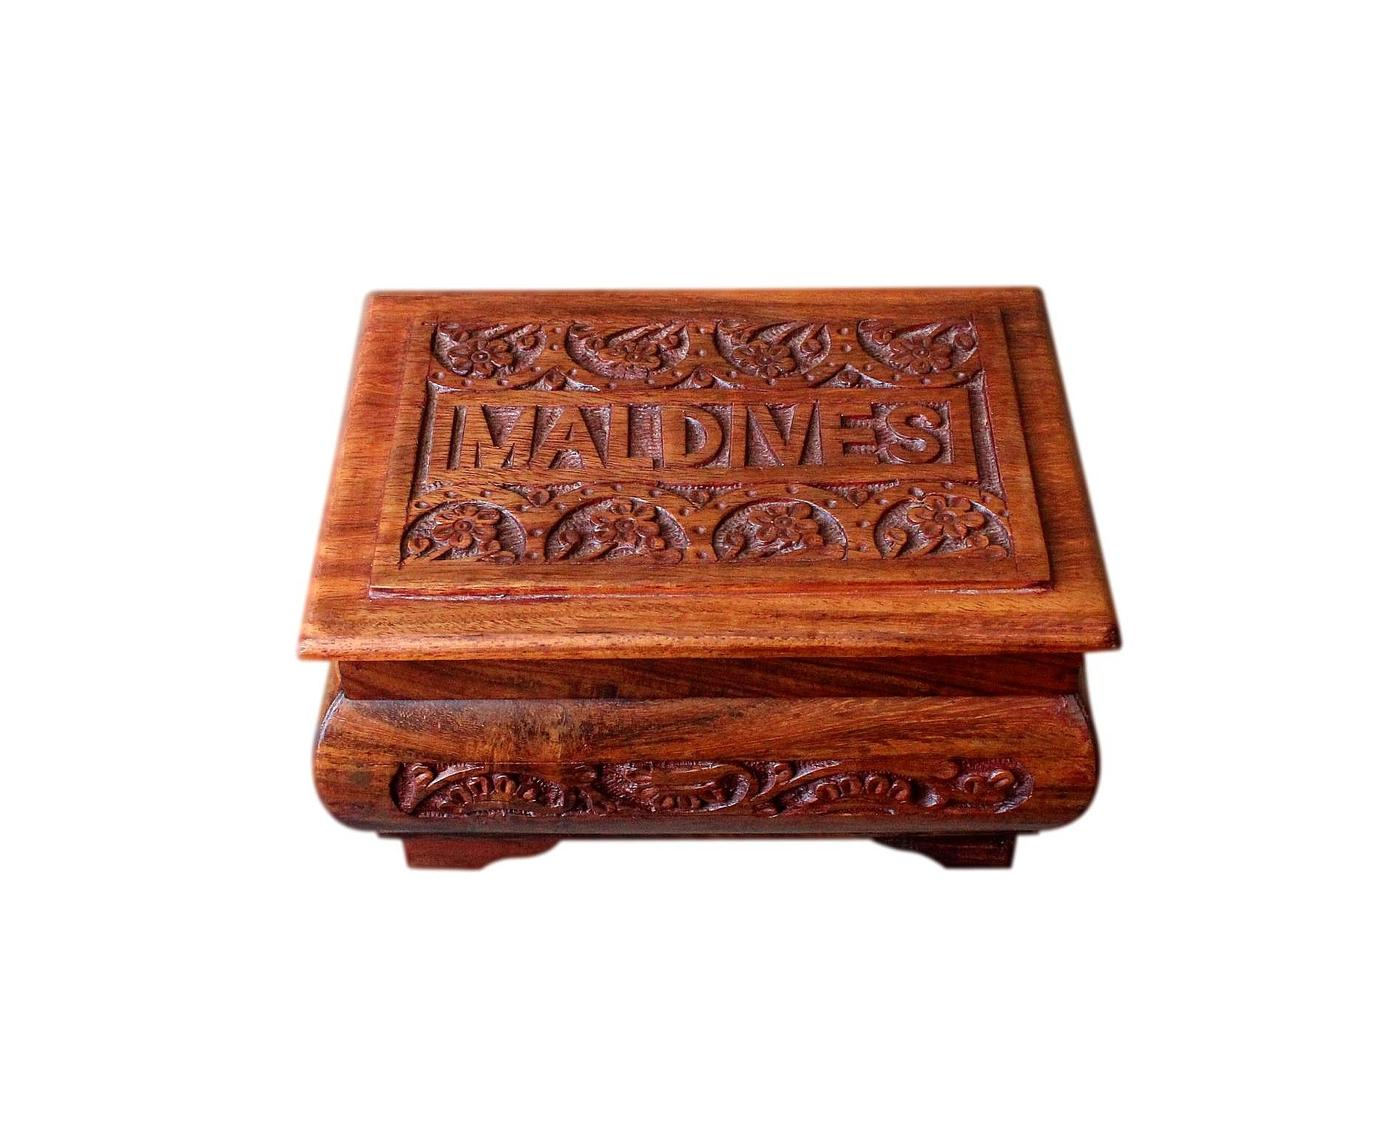 Beautiful Vintage Jewellery Box From The Maldives